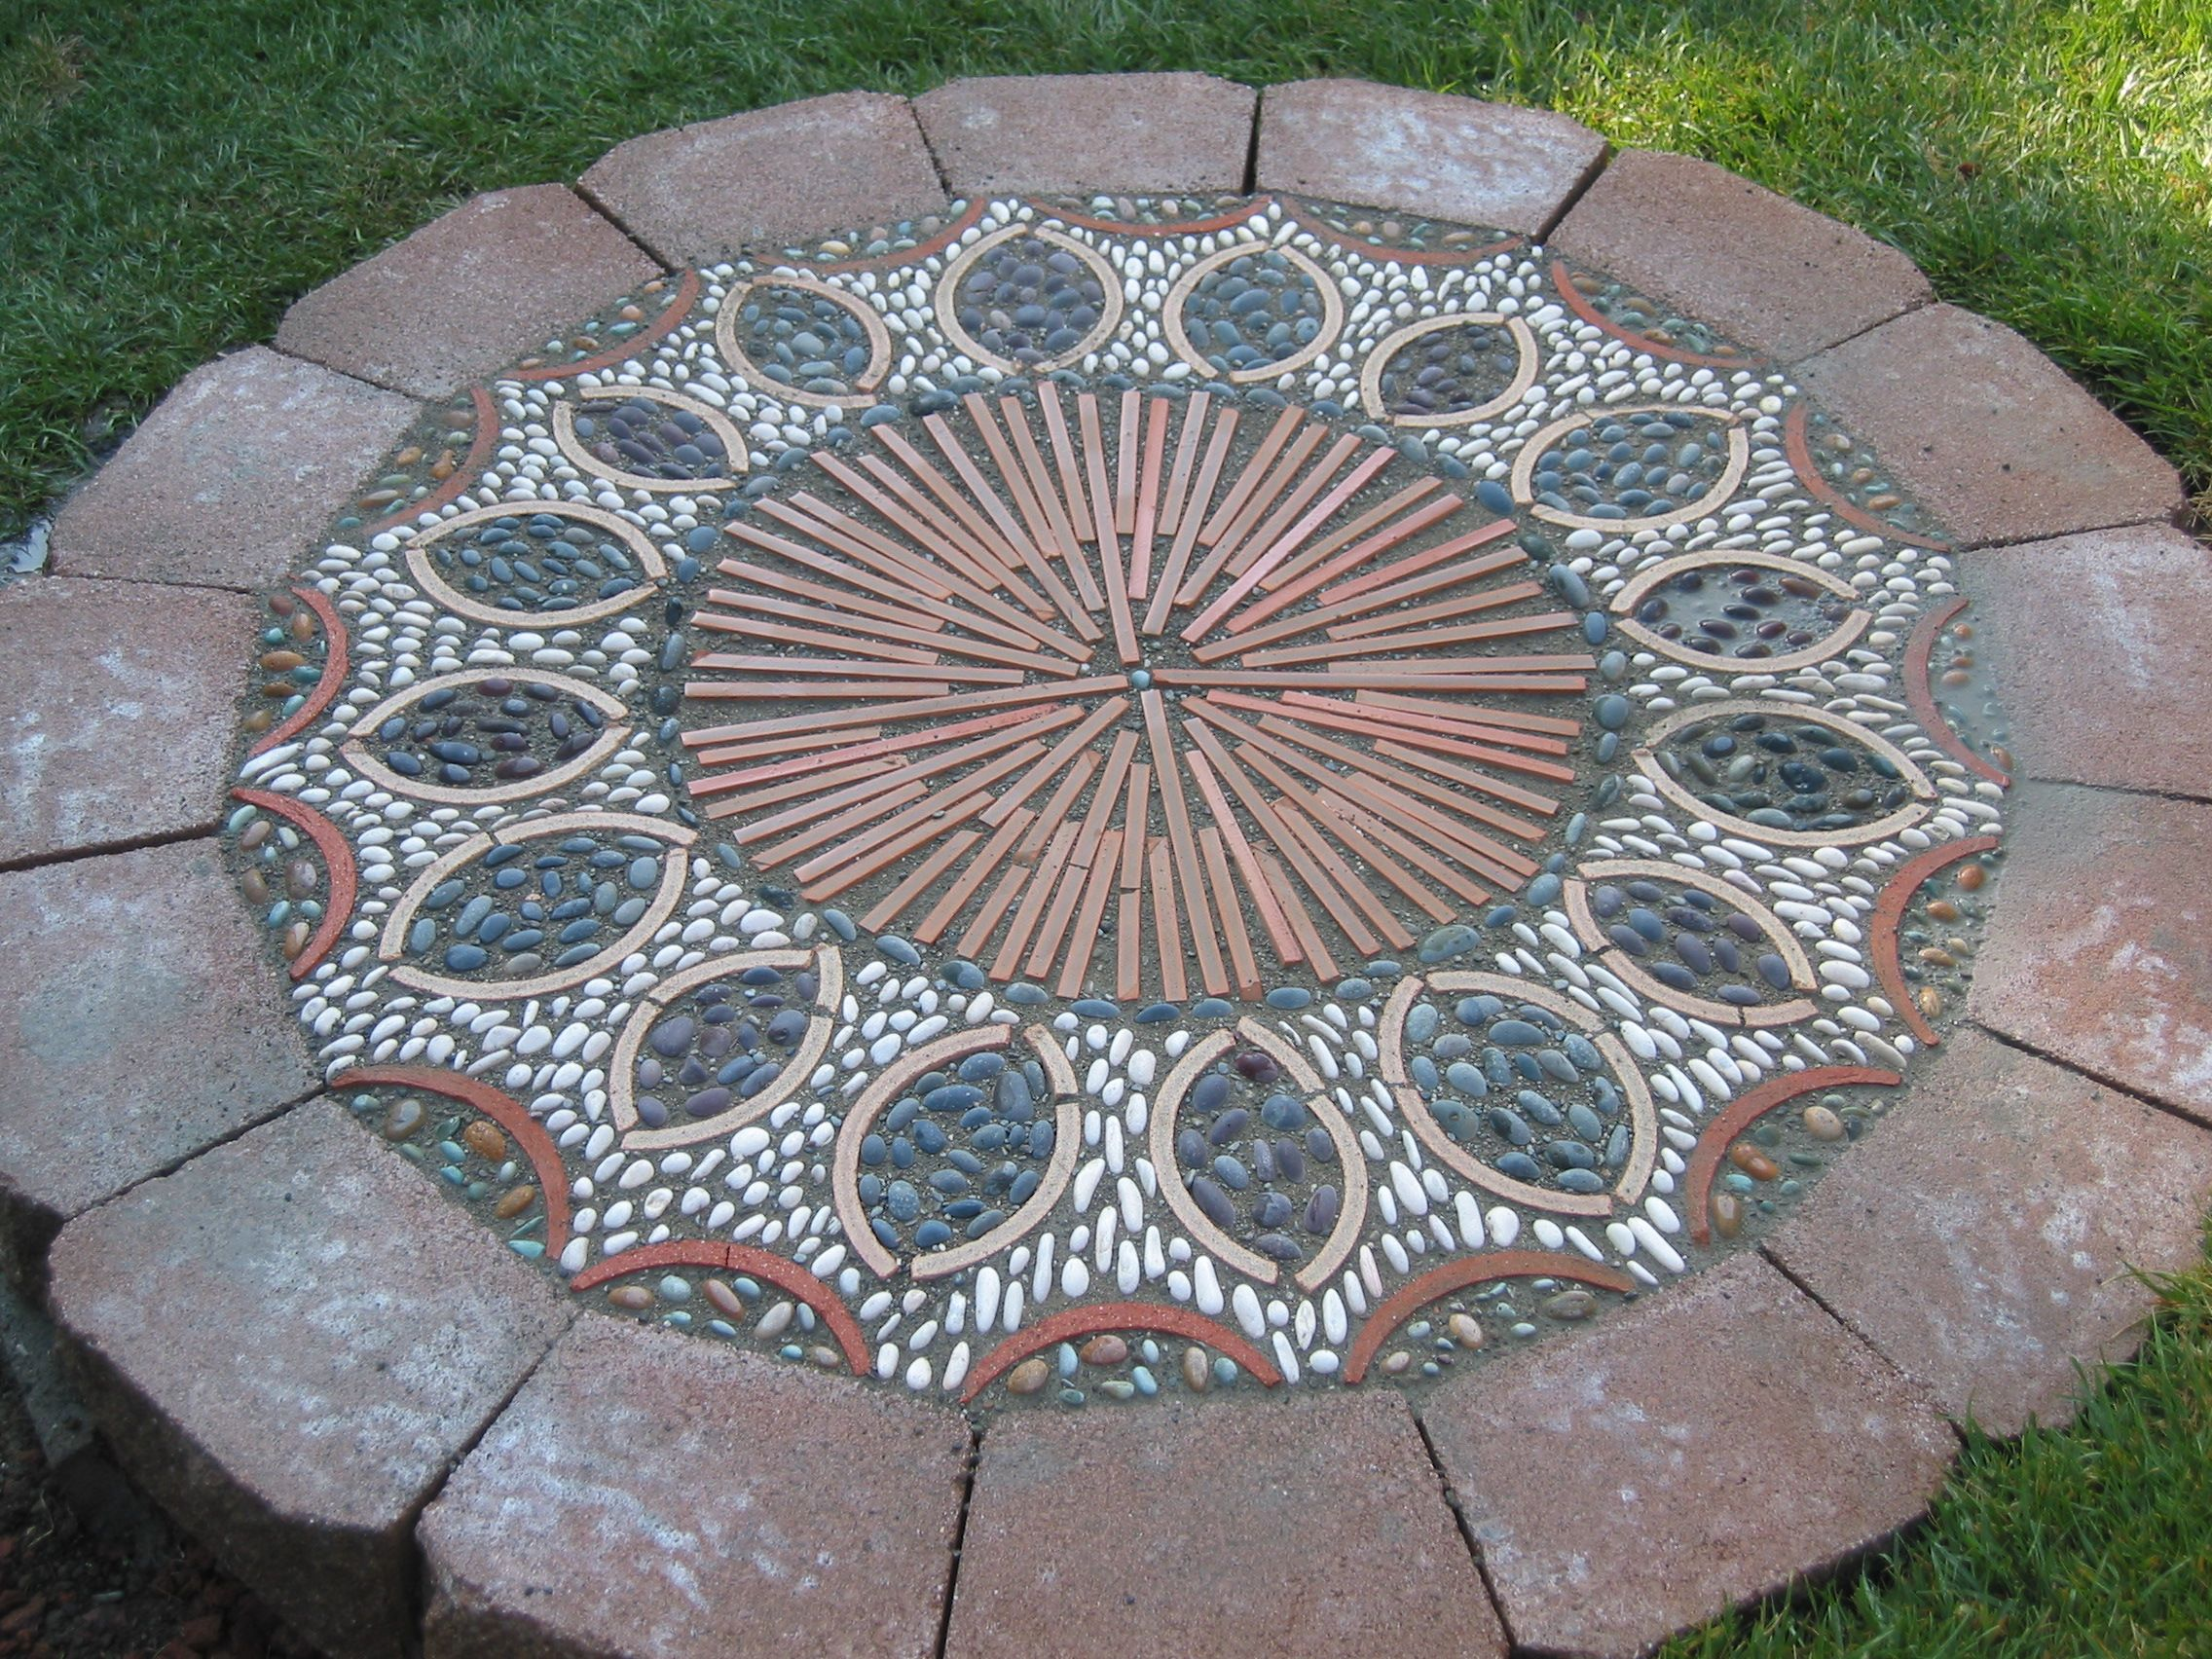 Pavers Patios With Mosaics Medium Cut Terra Cotta Roof Tiles Beach Pebbles And